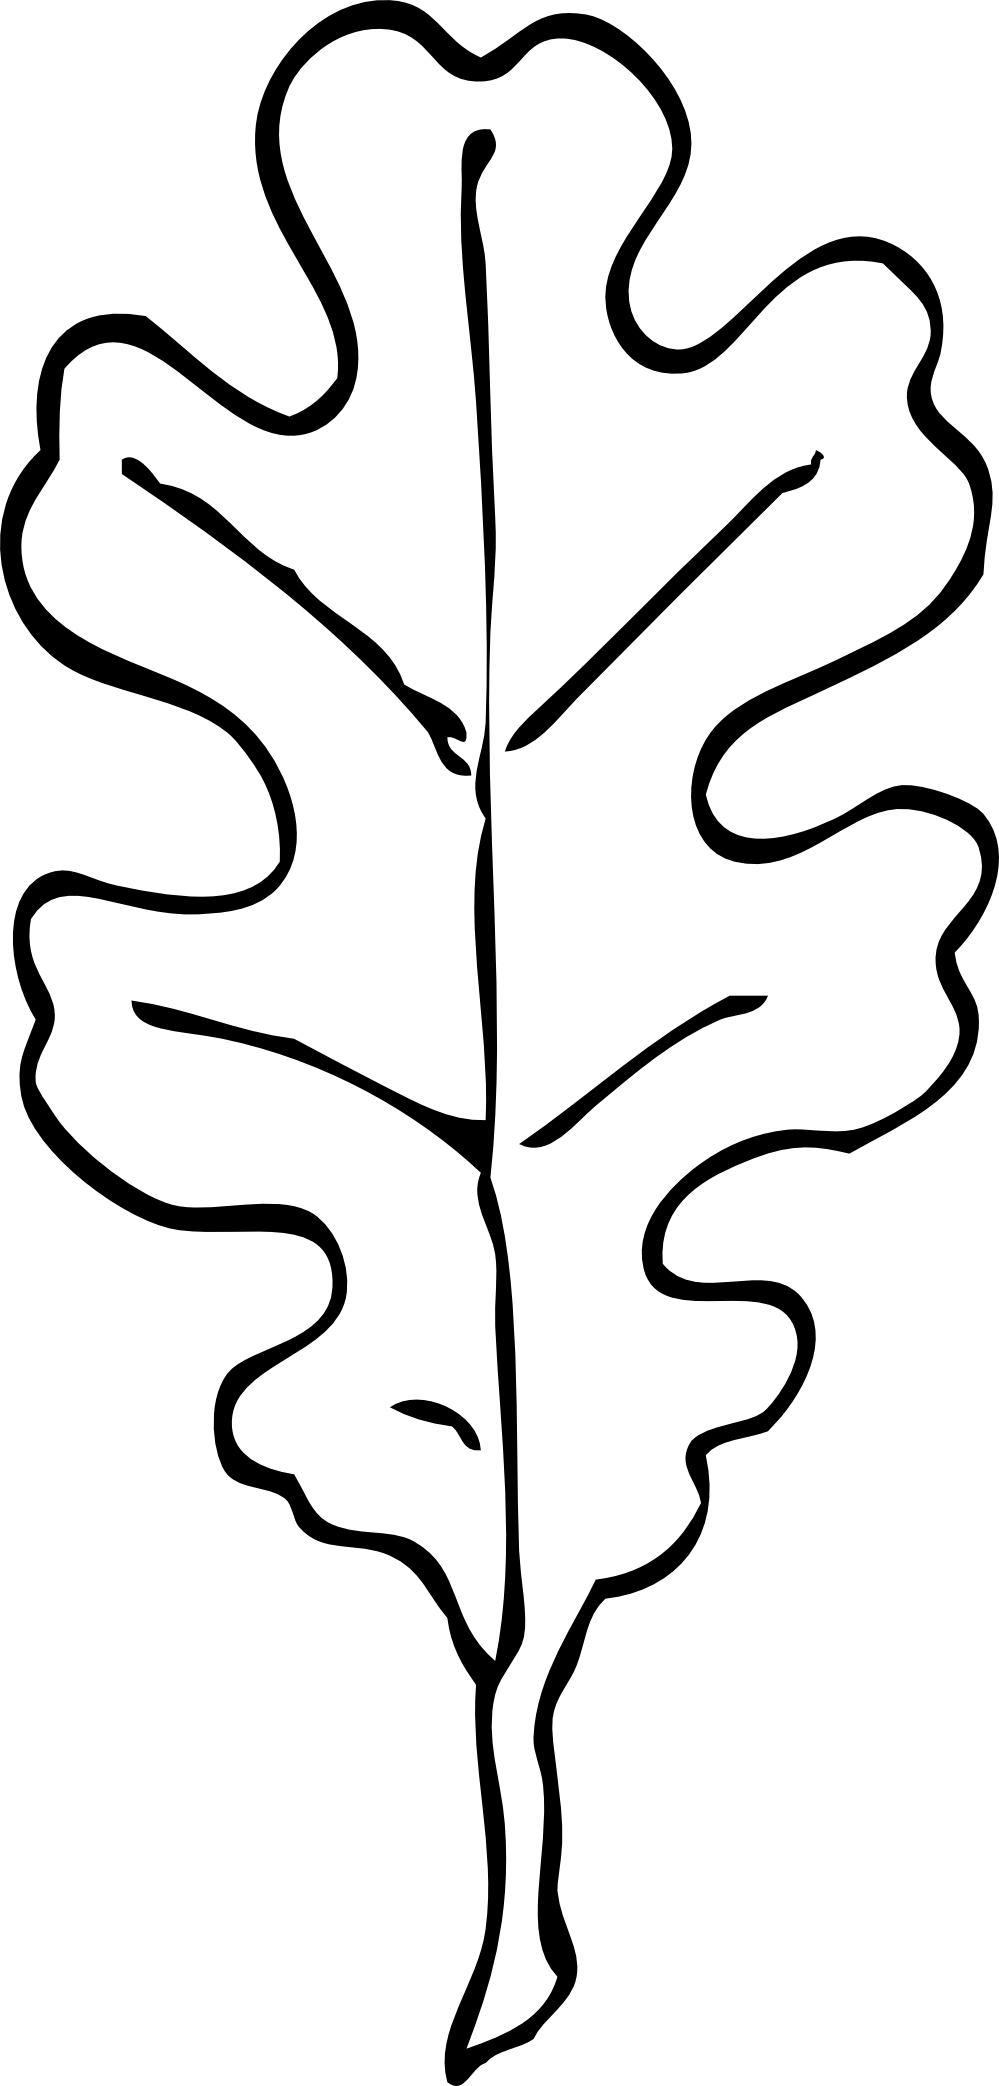 Tree clipart black and white. Leaf outline drawing at